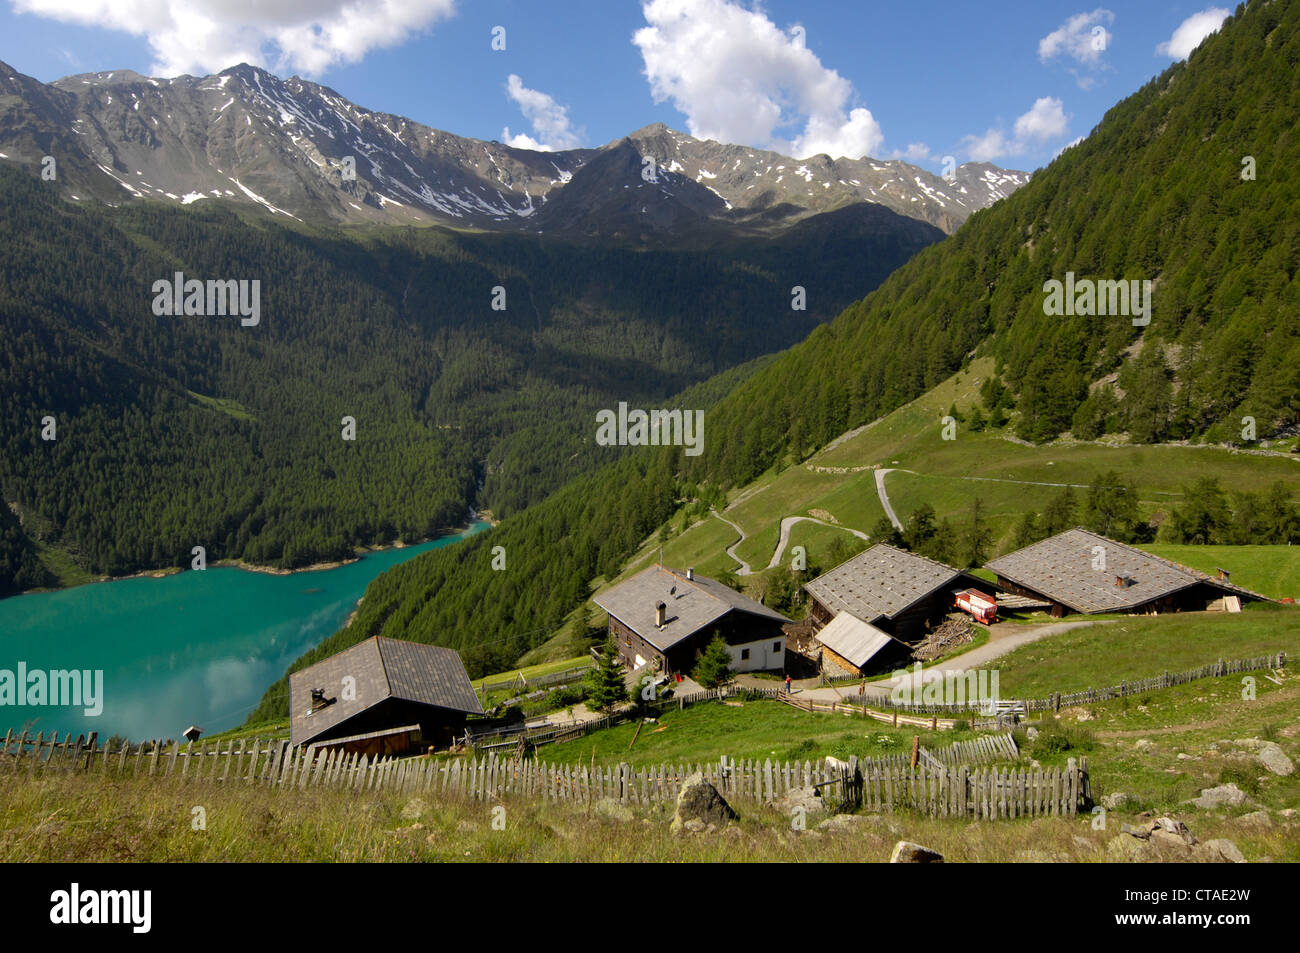 Farmhouses, mountain lake in the valley, Vernagt reservoir, Schnals Valley, Vinschgau, South Tyrol, Trentino-Alto - Stock Image